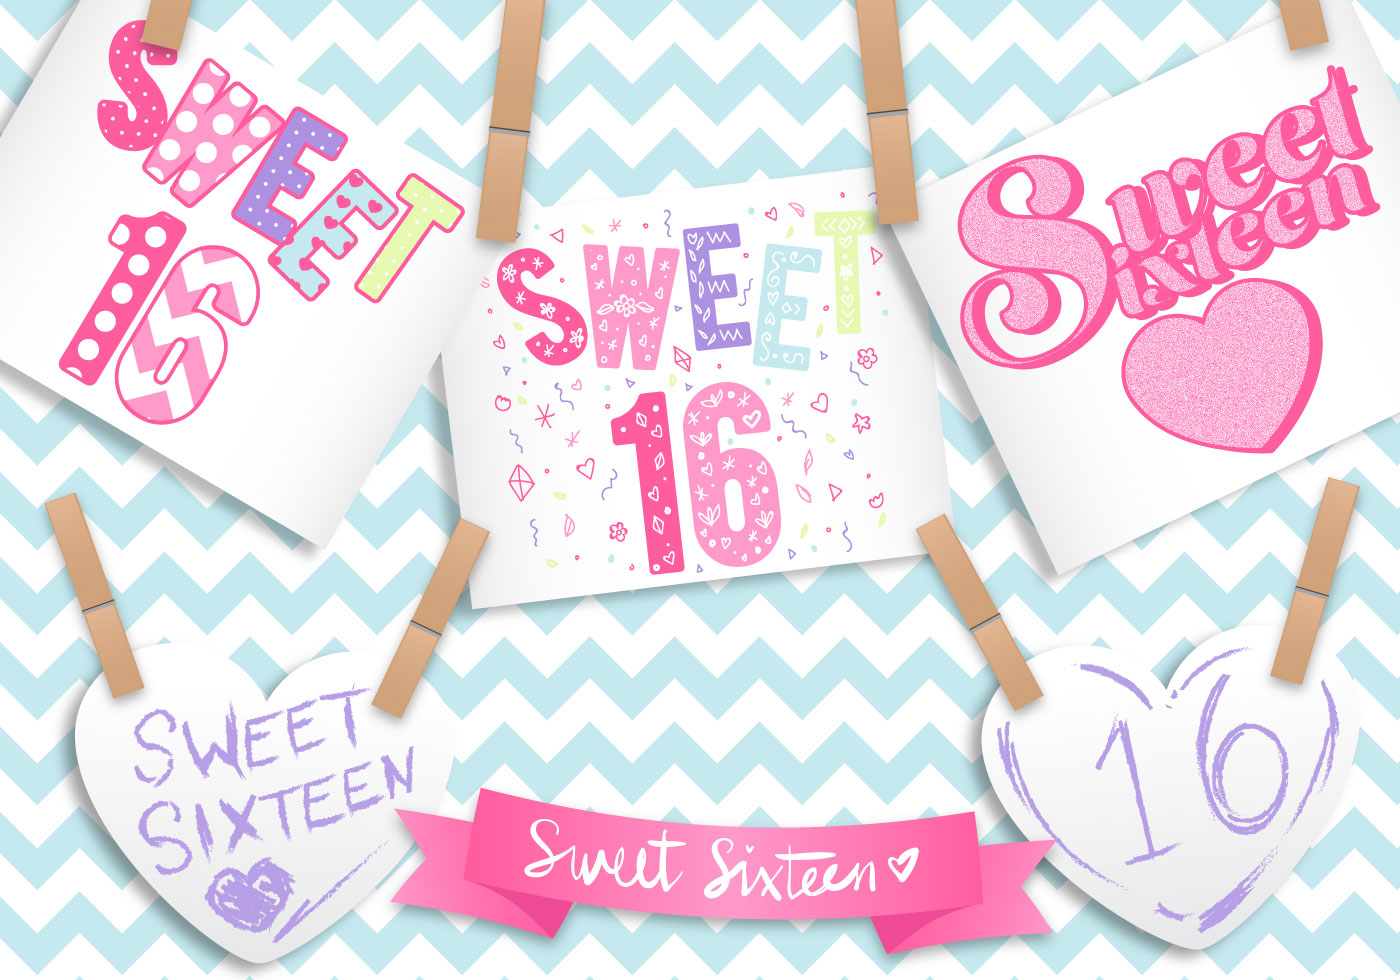 Sweet 16 Card Vector Illustration - Download Free Vector ...